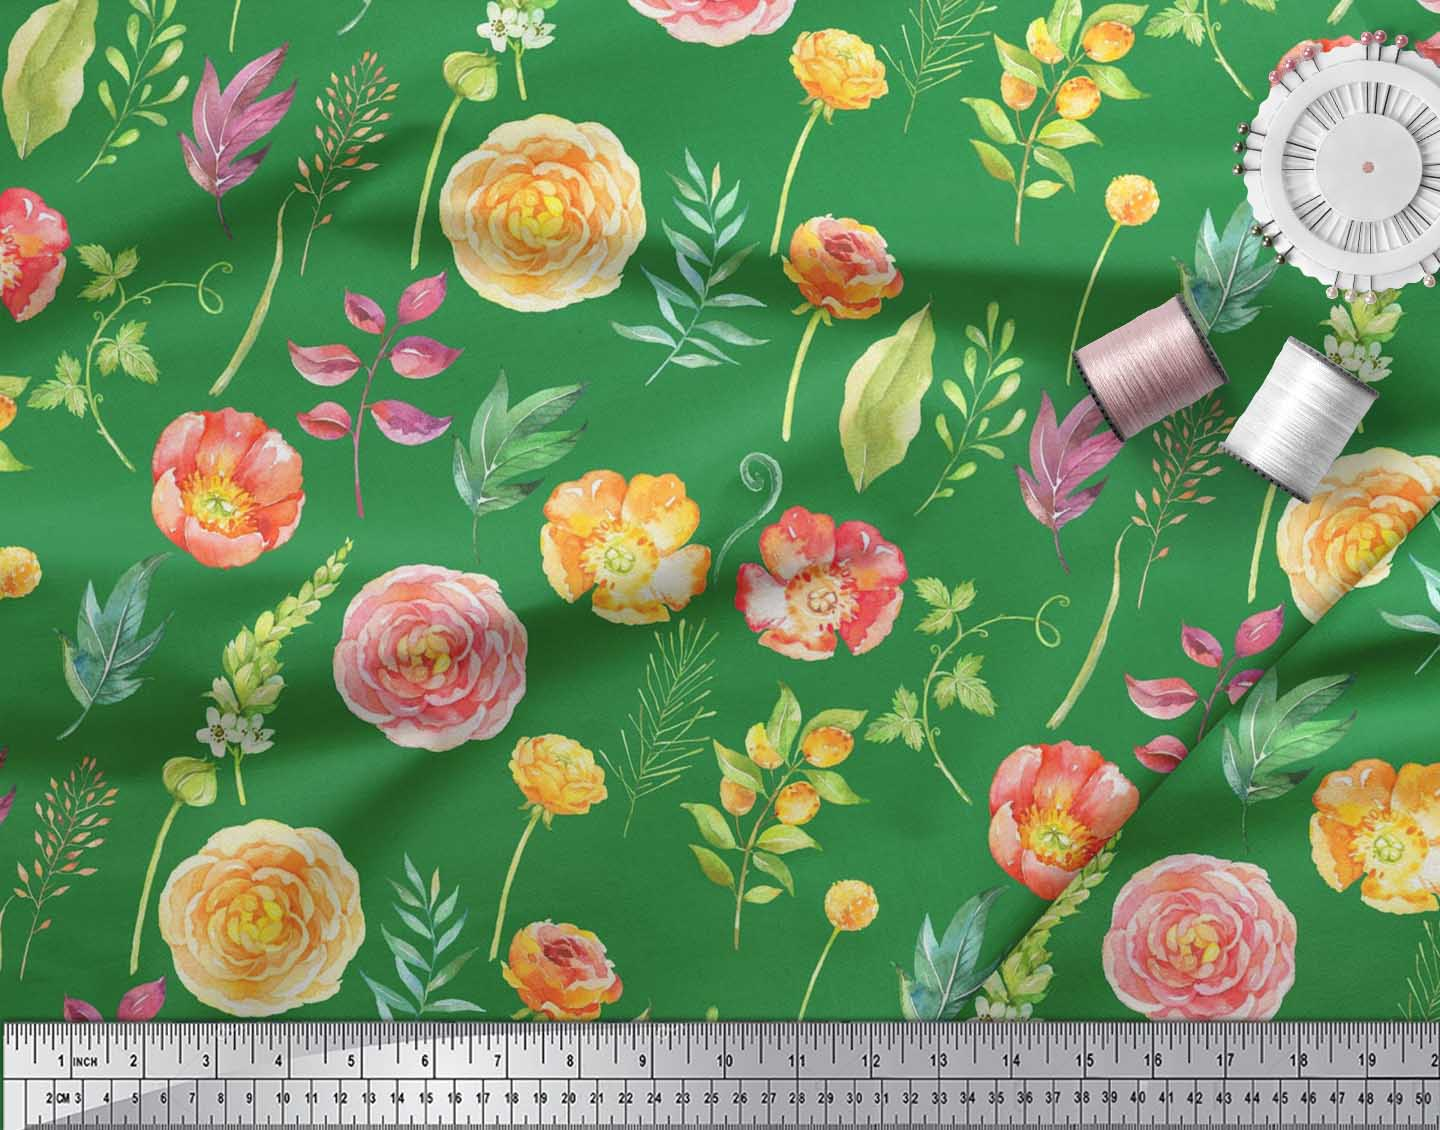 Soimoi-Cotton-Poplin-Fabric-Leaves-amp-Begonia-Floral-Printed-Fabric-ZYt thumbnail 4